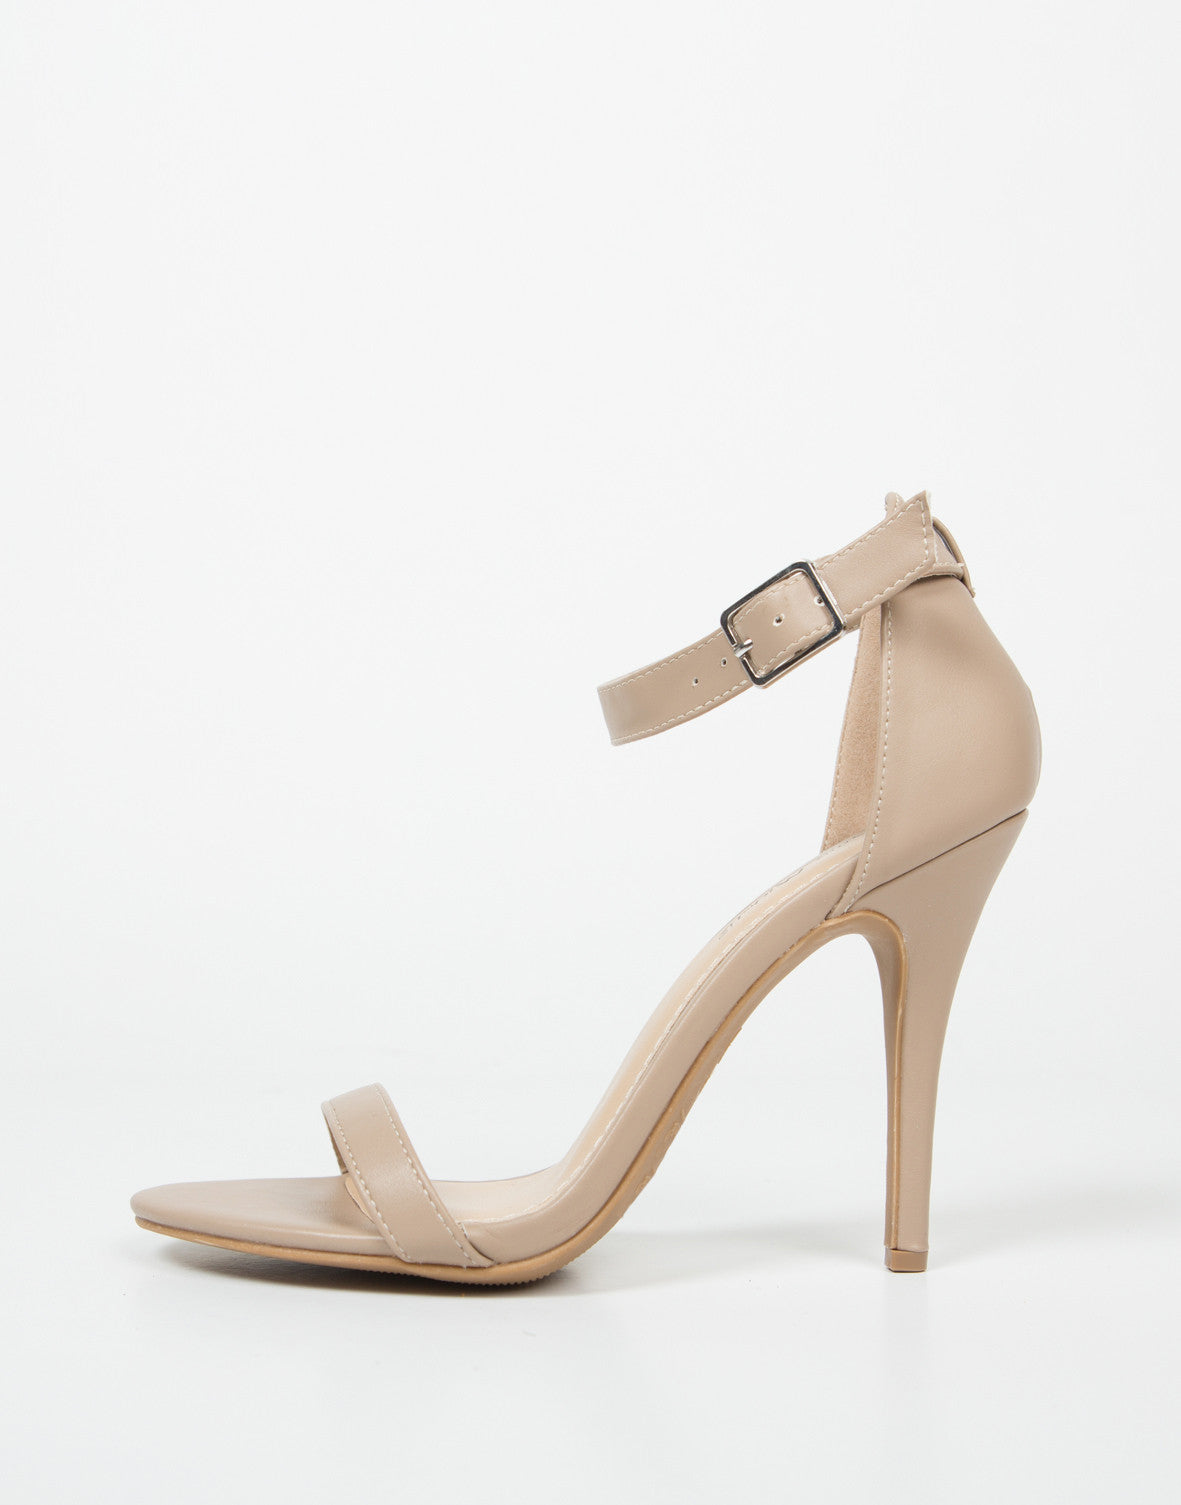 Side View of Ankle Strapped Stiletto Heels